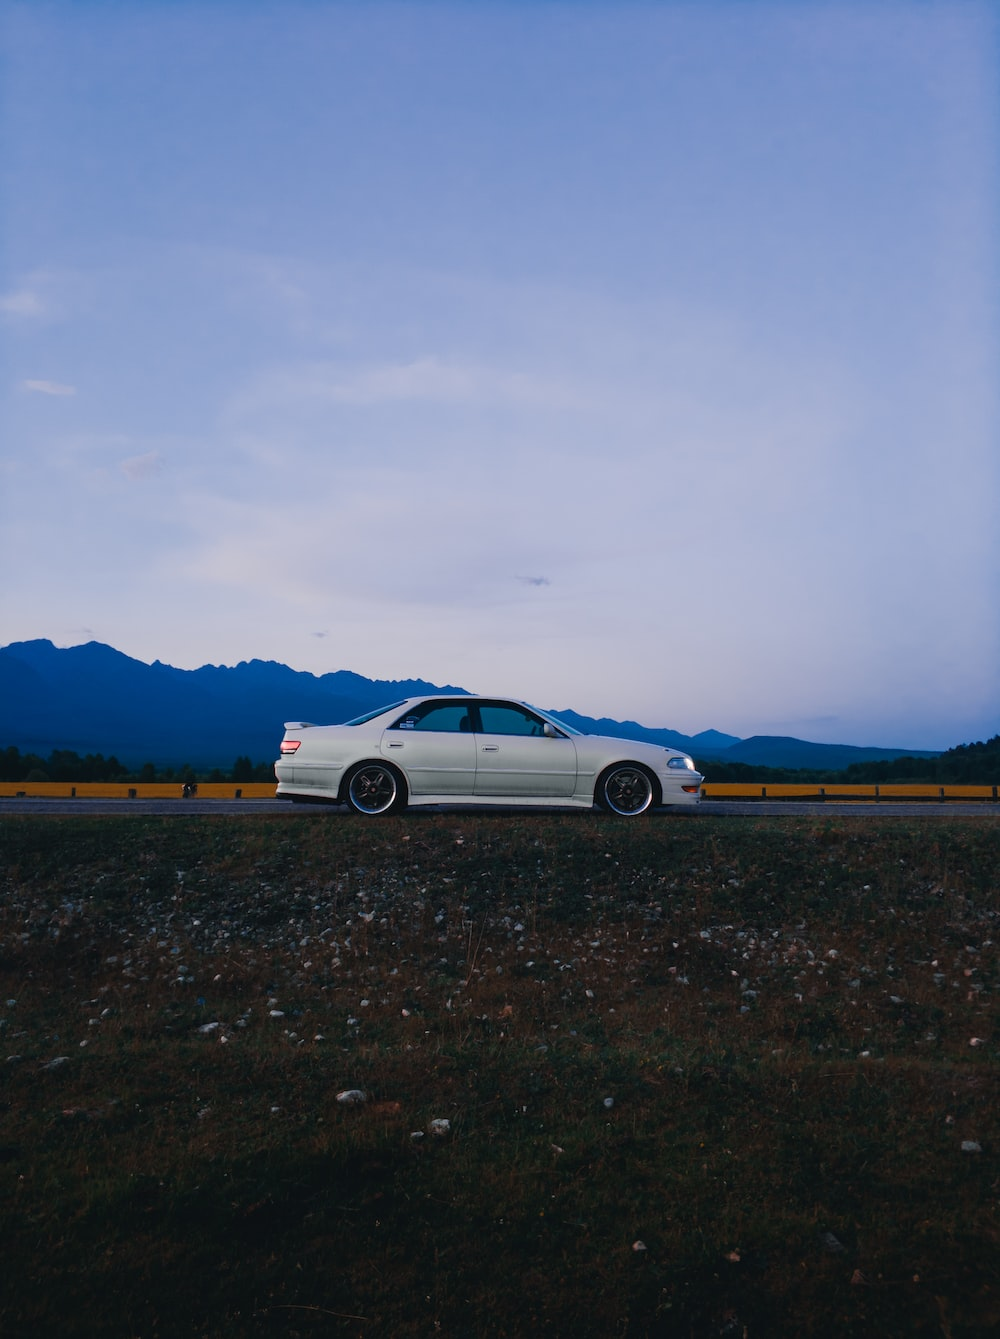 white coupe on brown dirt road during daytime